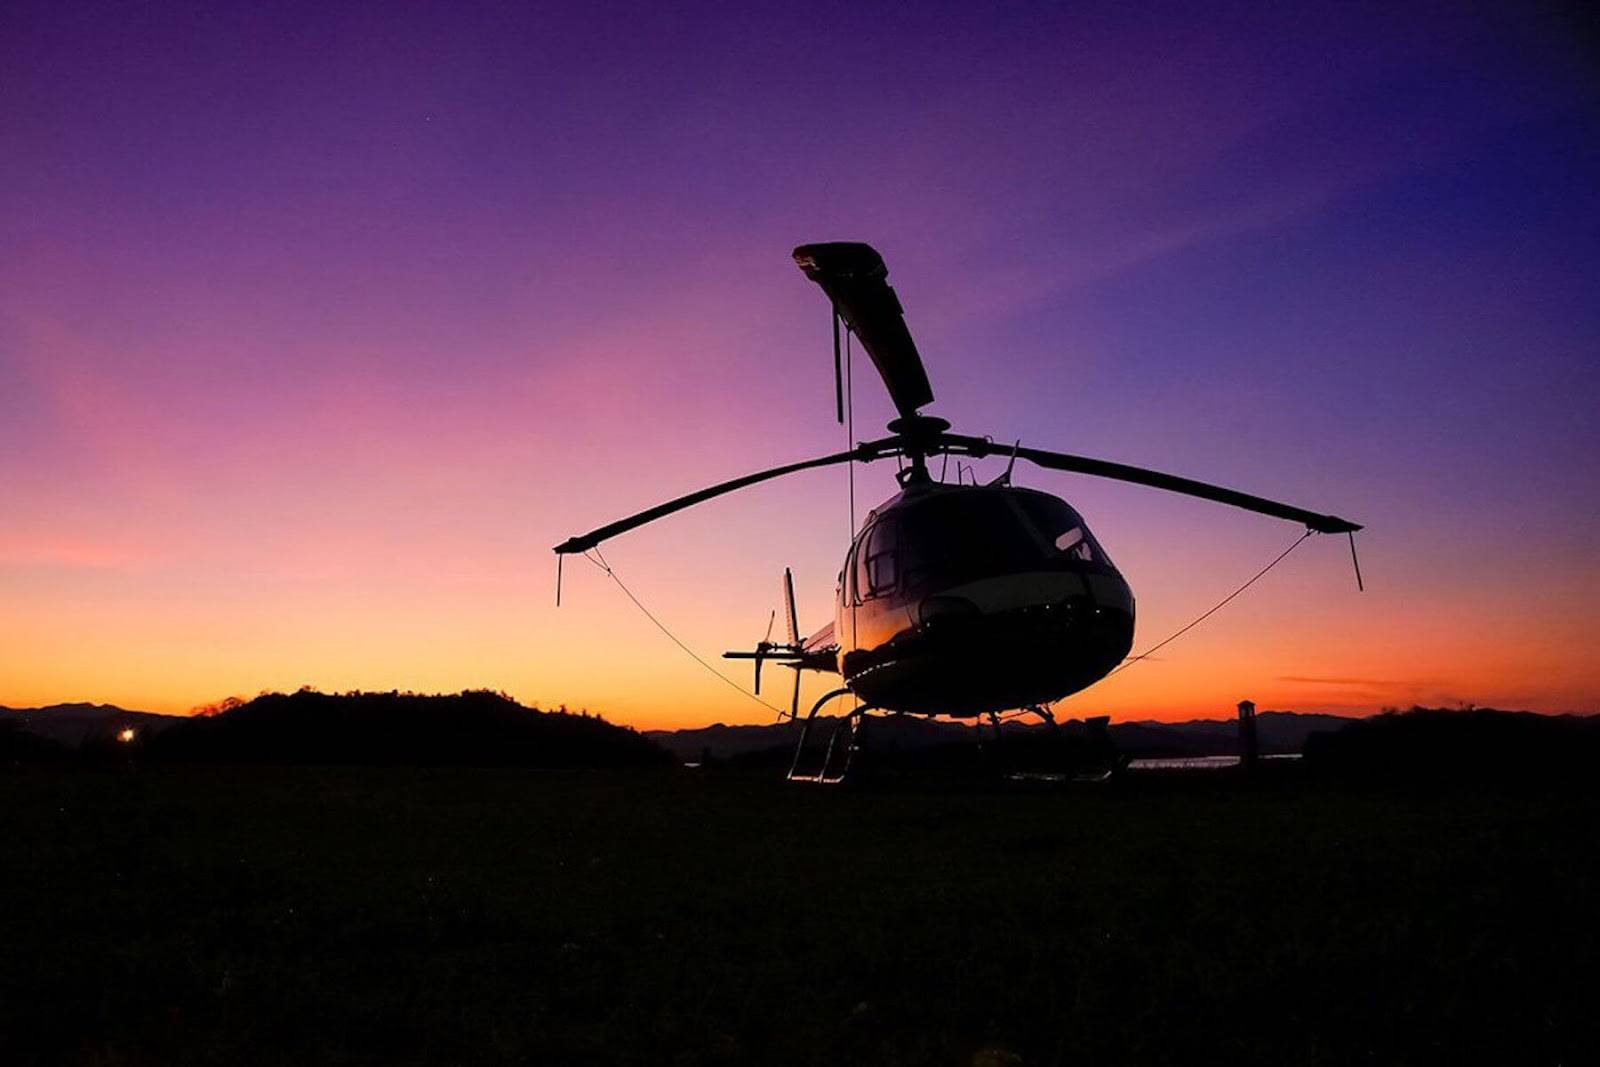 helicopter in front of a sunset